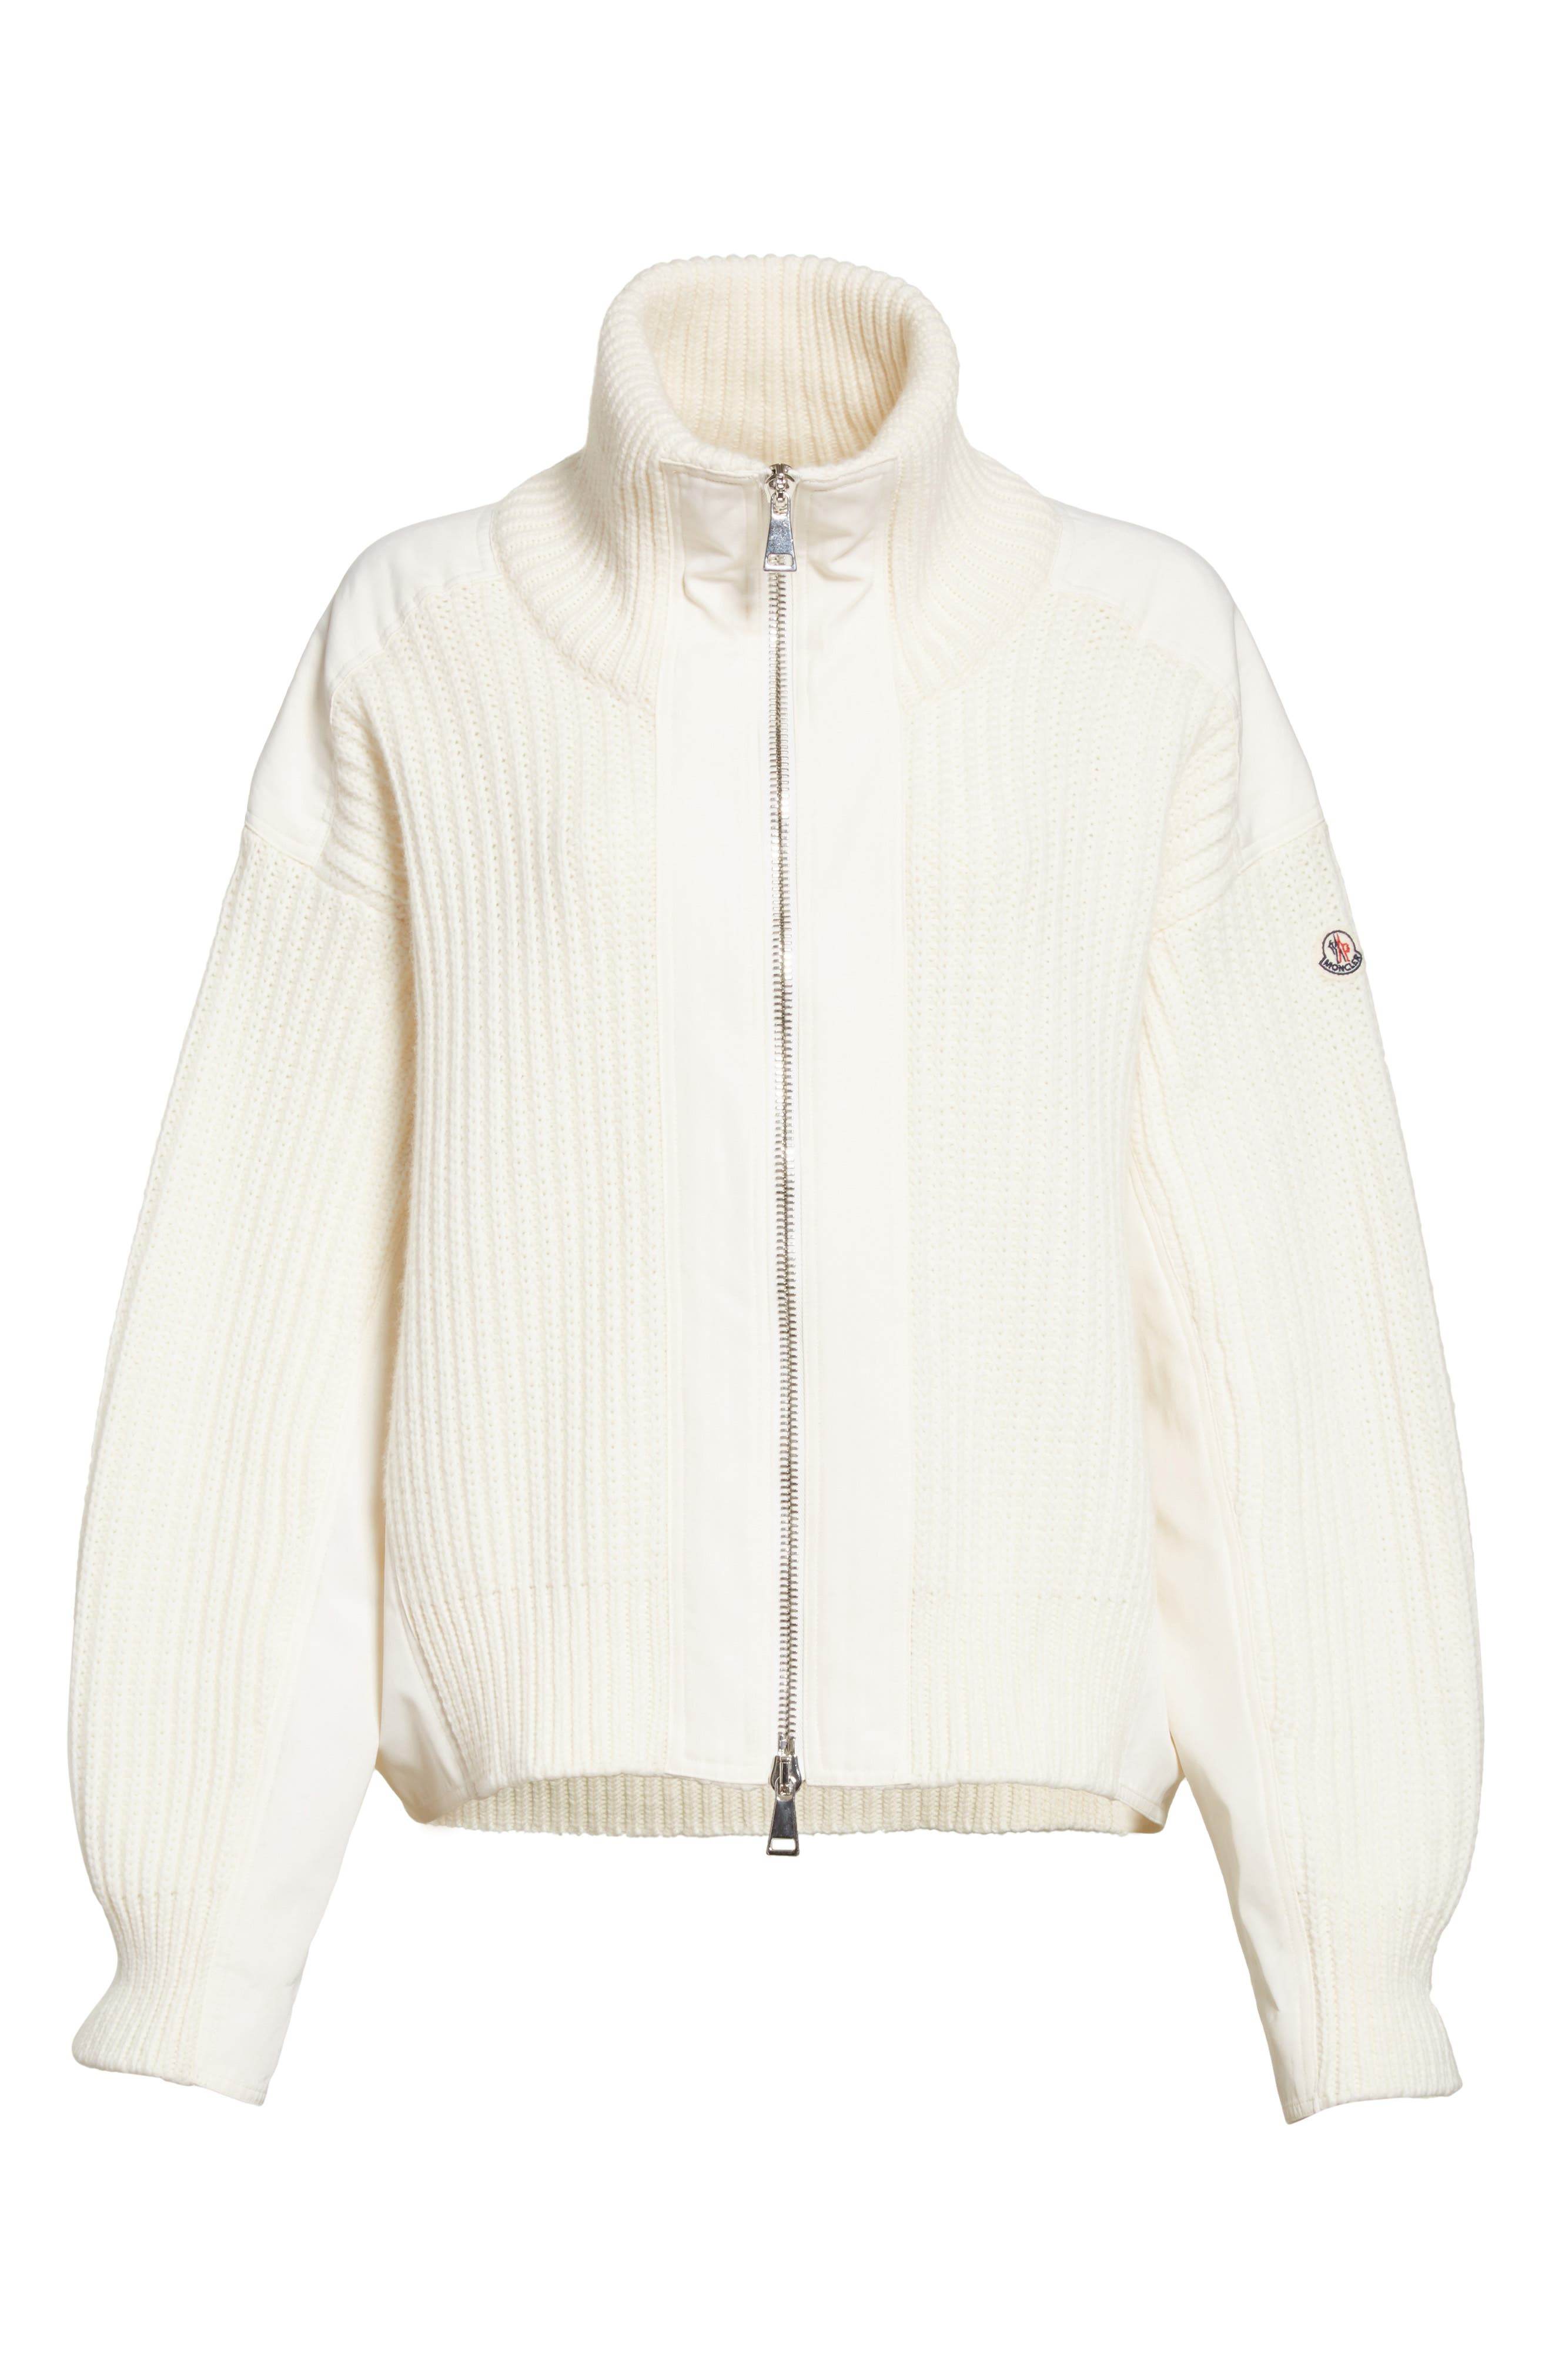 Wool & Cashmere Cardigan,                             Alternate thumbnail 6, color,                             White